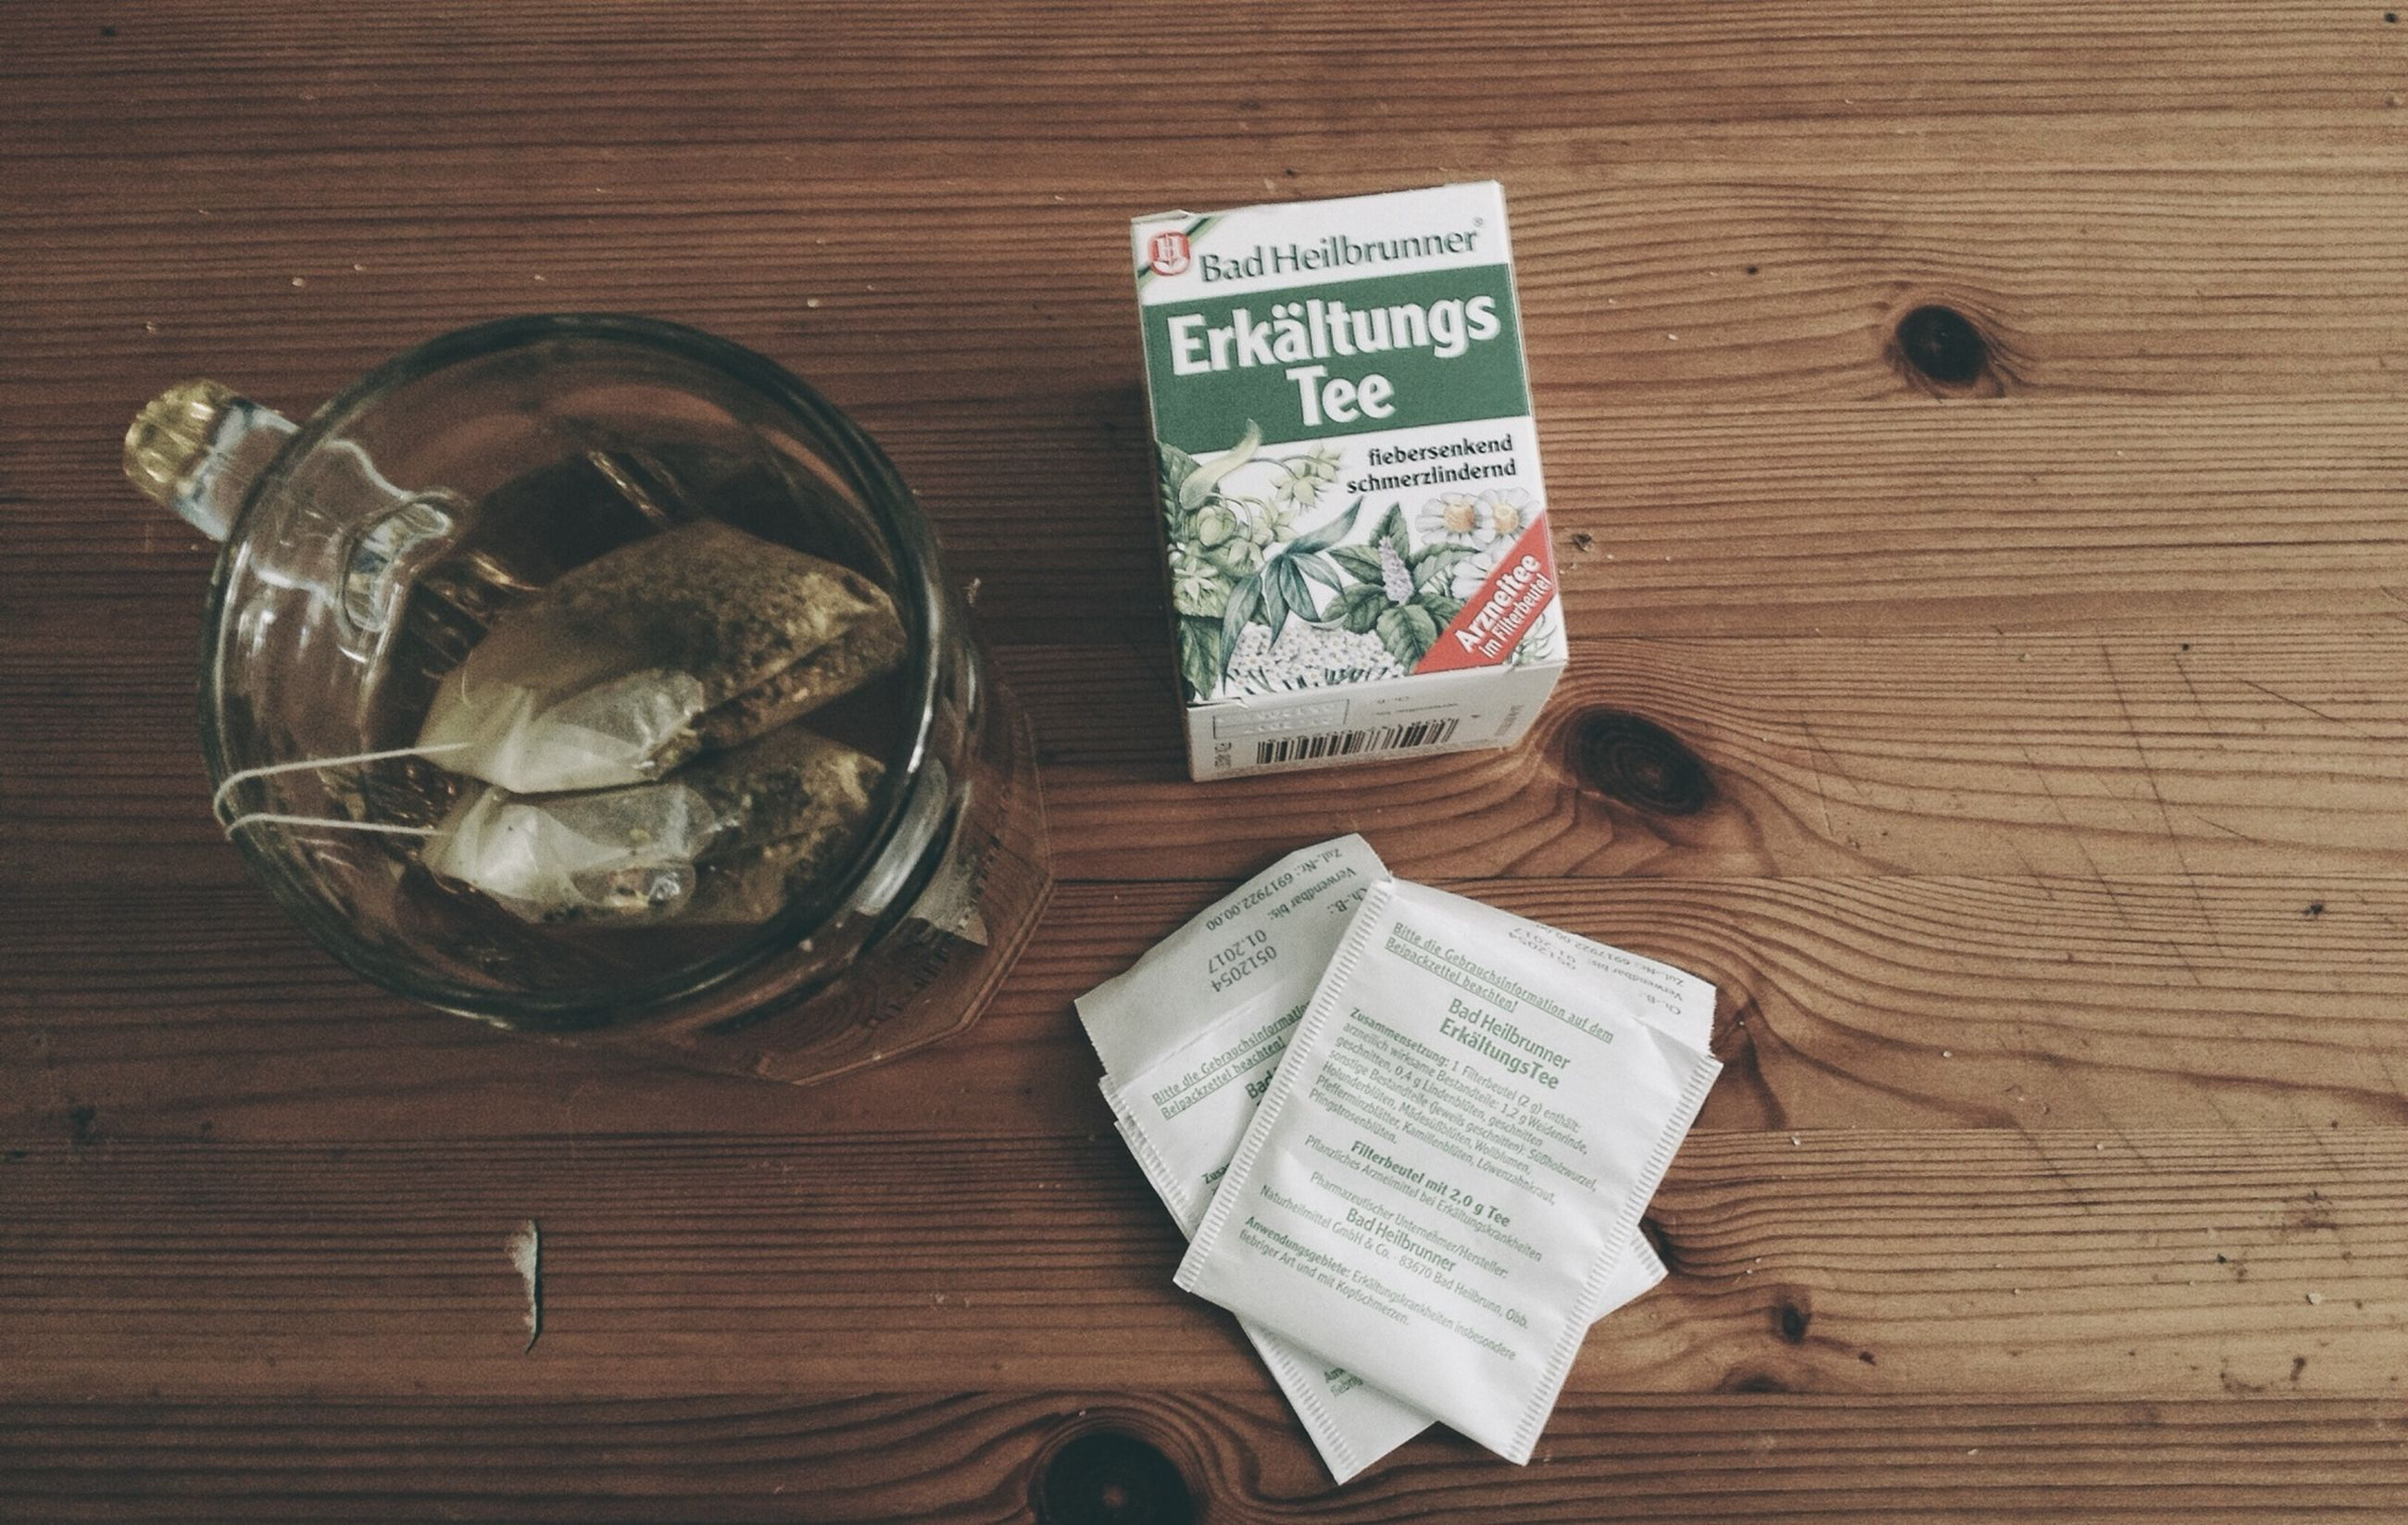 text, western script, food and drink, communication, indoors, still life, table, wood - material, freshness, high angle view, food, close-up, non-western script, paper, healthy eating, wooden, no people, information, book, refreshment